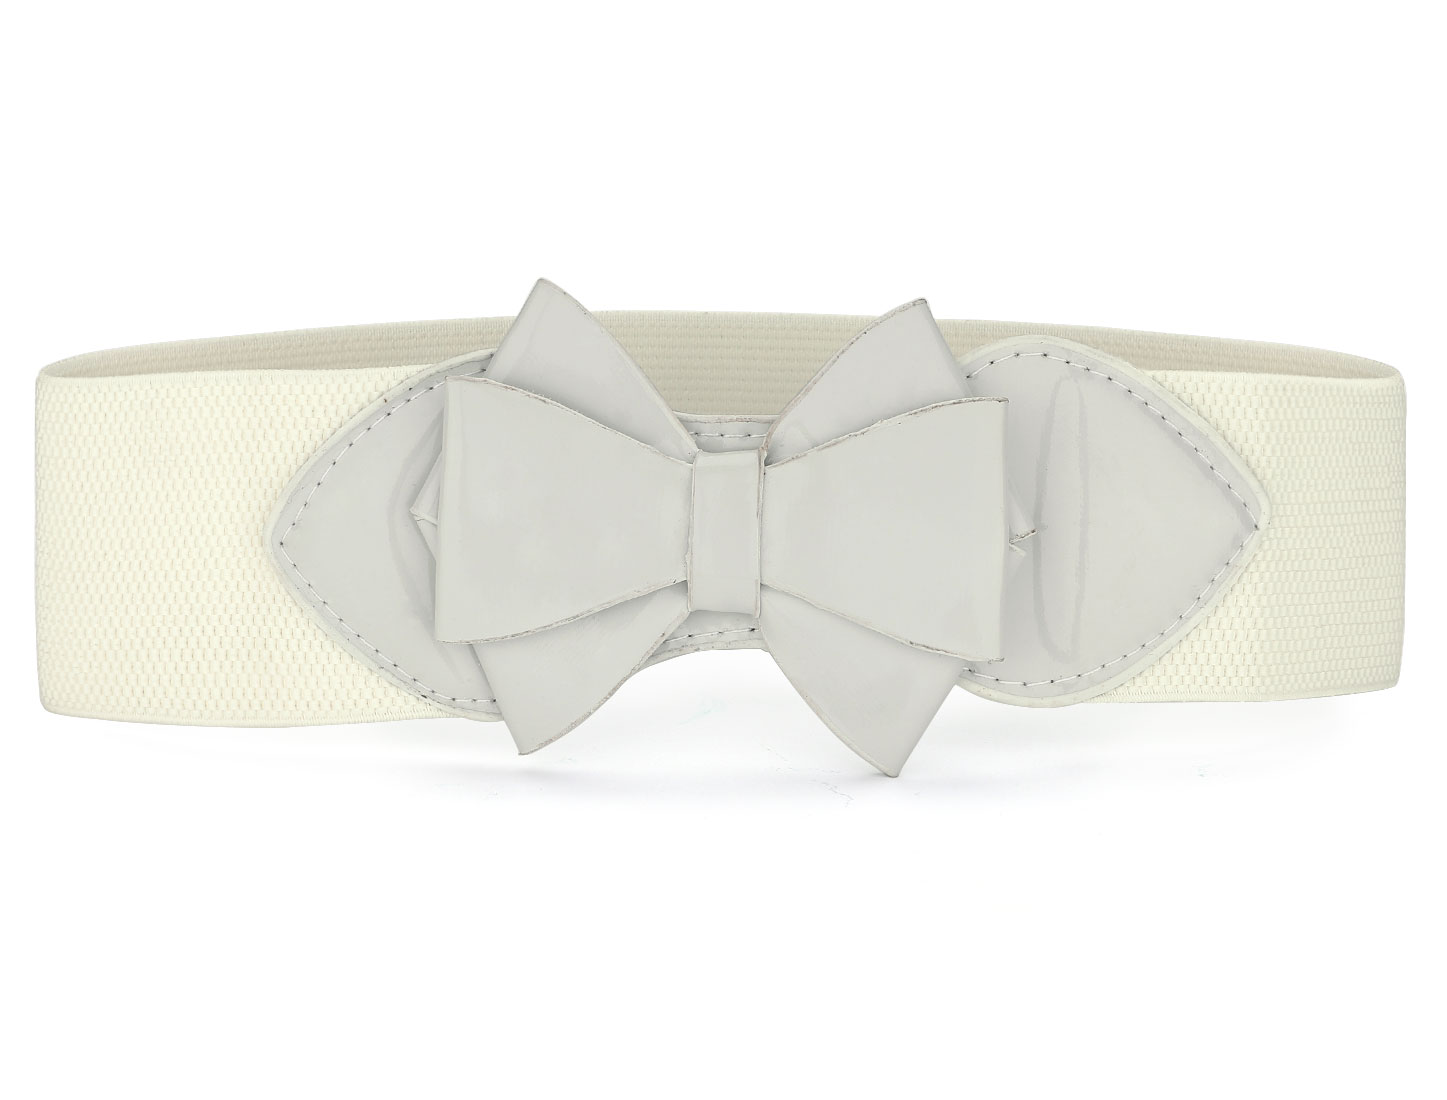 Faux Leather Bowknot Decor Stretchy Waist Belt Off White for Women